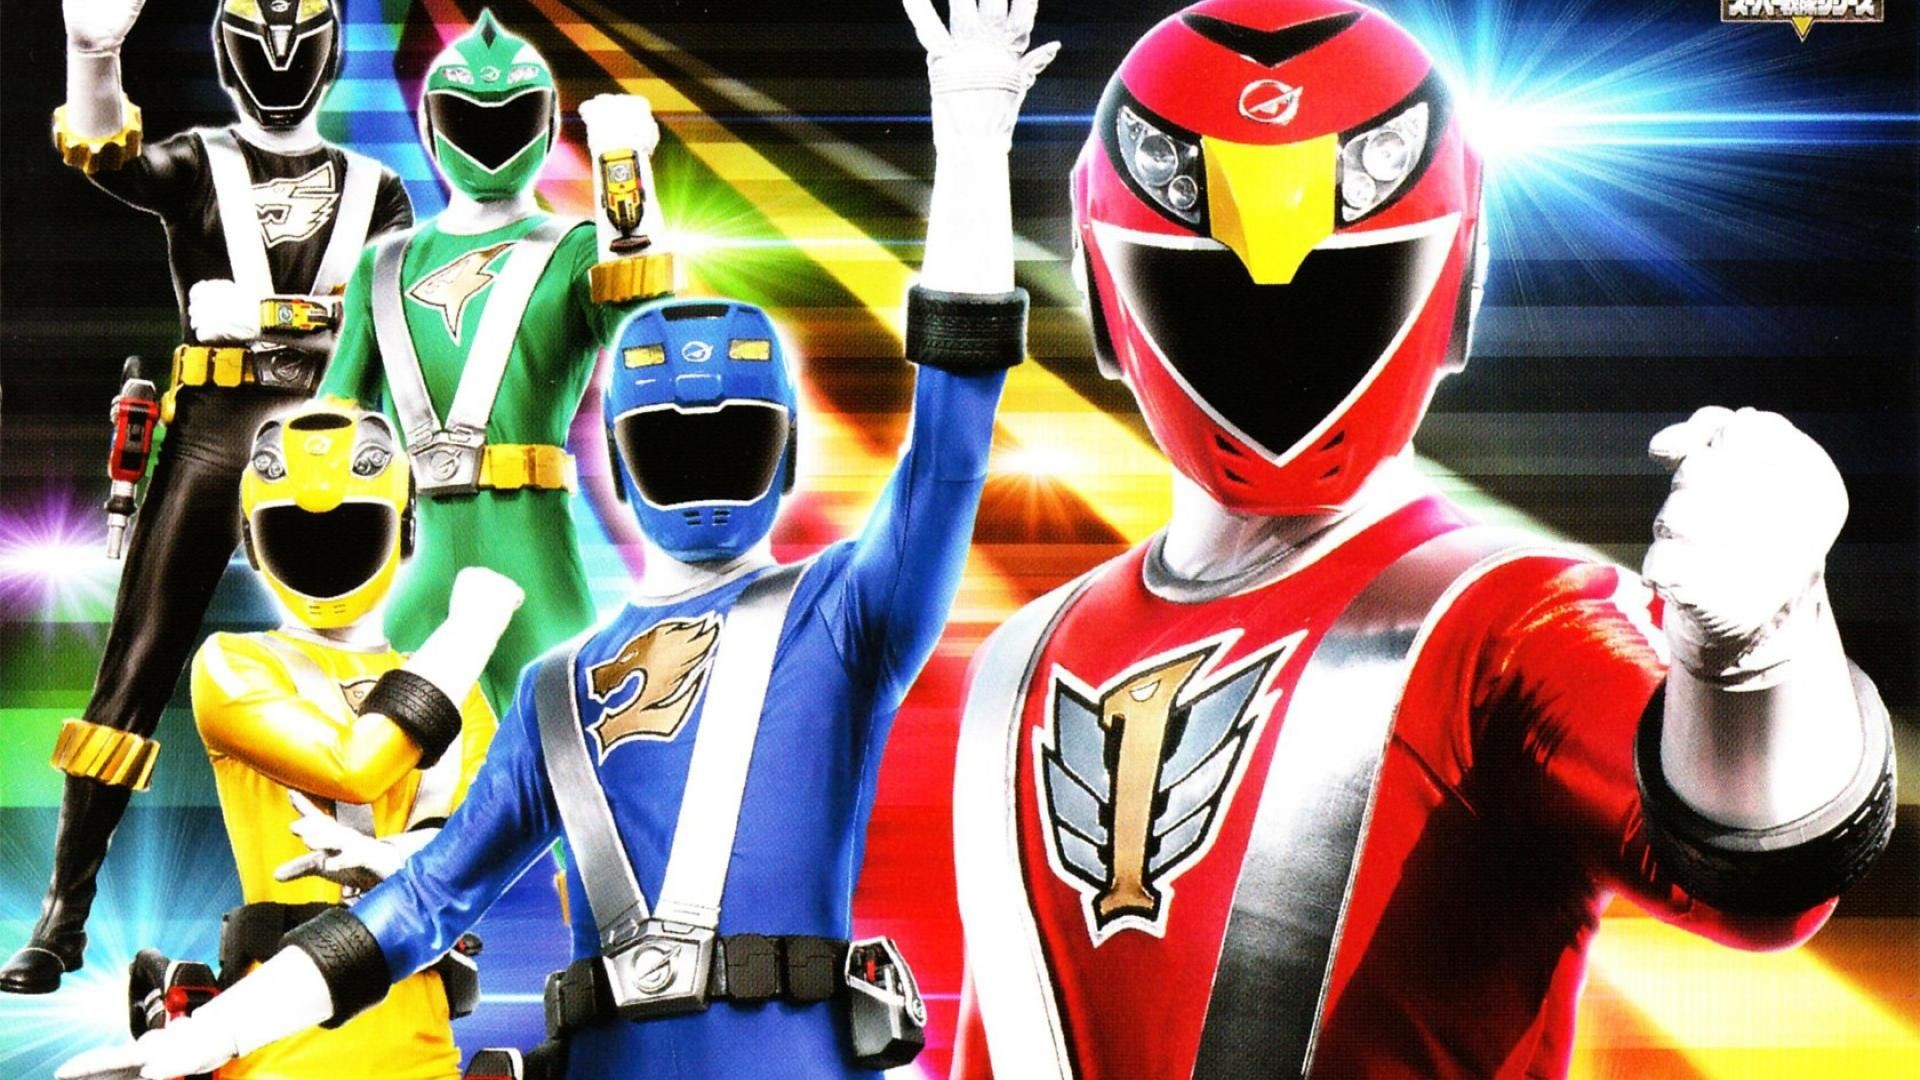 Res: 1920x1080, Mighty Morphin Power Rangers Wallpapers HD Wallpapers 1680×1050 Power  Rangers Backgrounds (38 Wallpapers)   Adorable Wallpapers